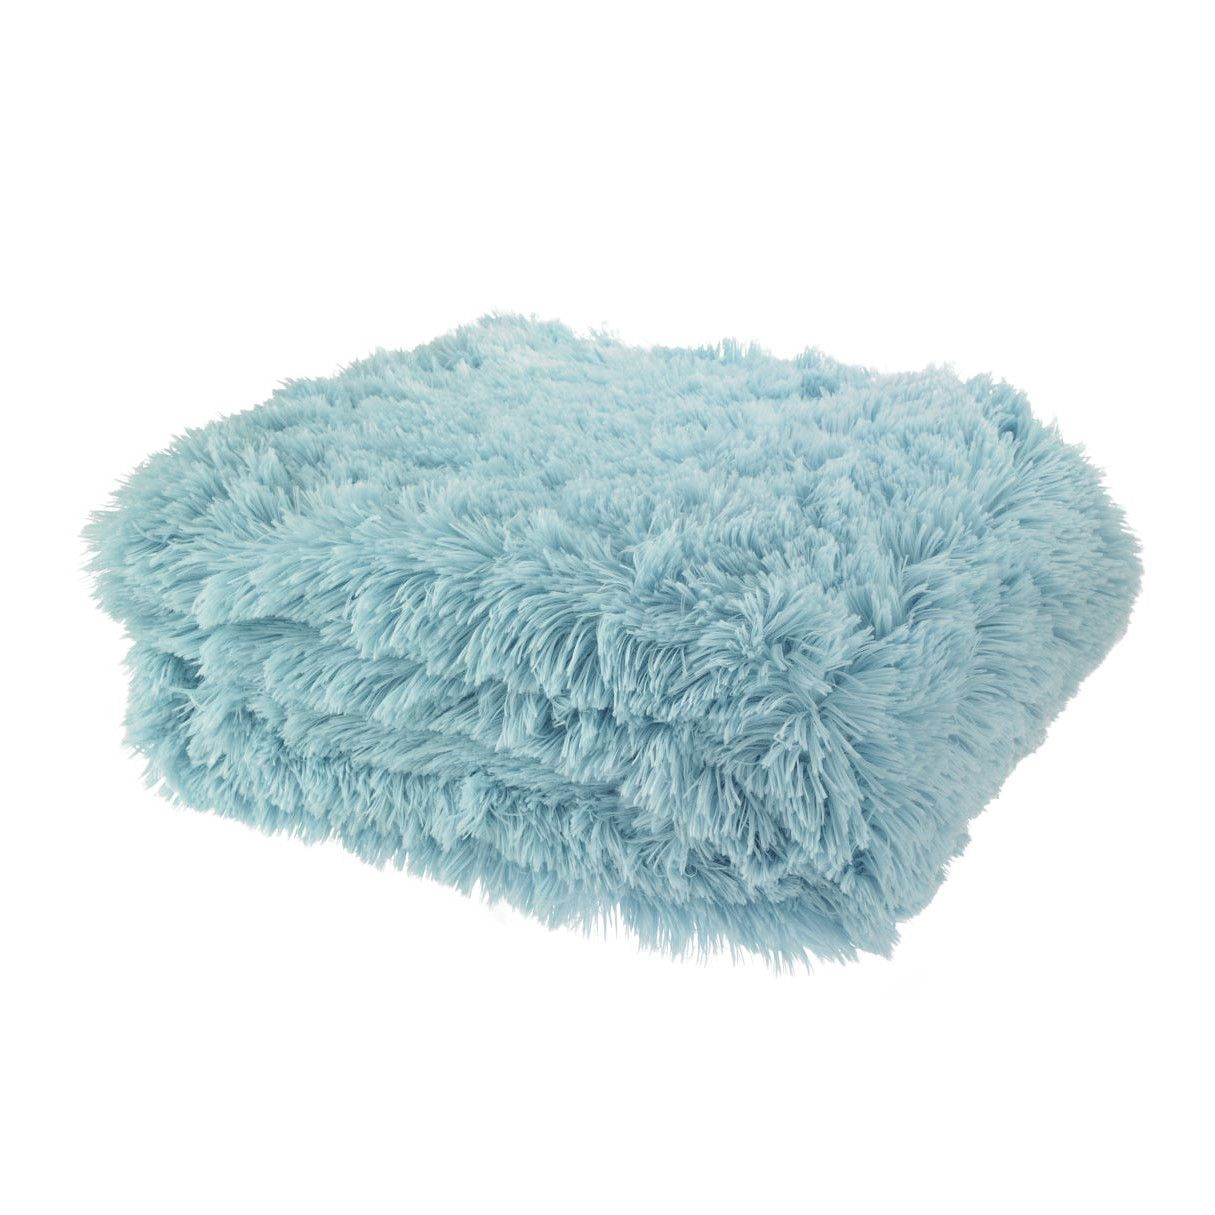 Shop wayfair.co.uk for your Designer Cuddly Throw. Find the best deals on all  products, great selection and free shipping on many items!